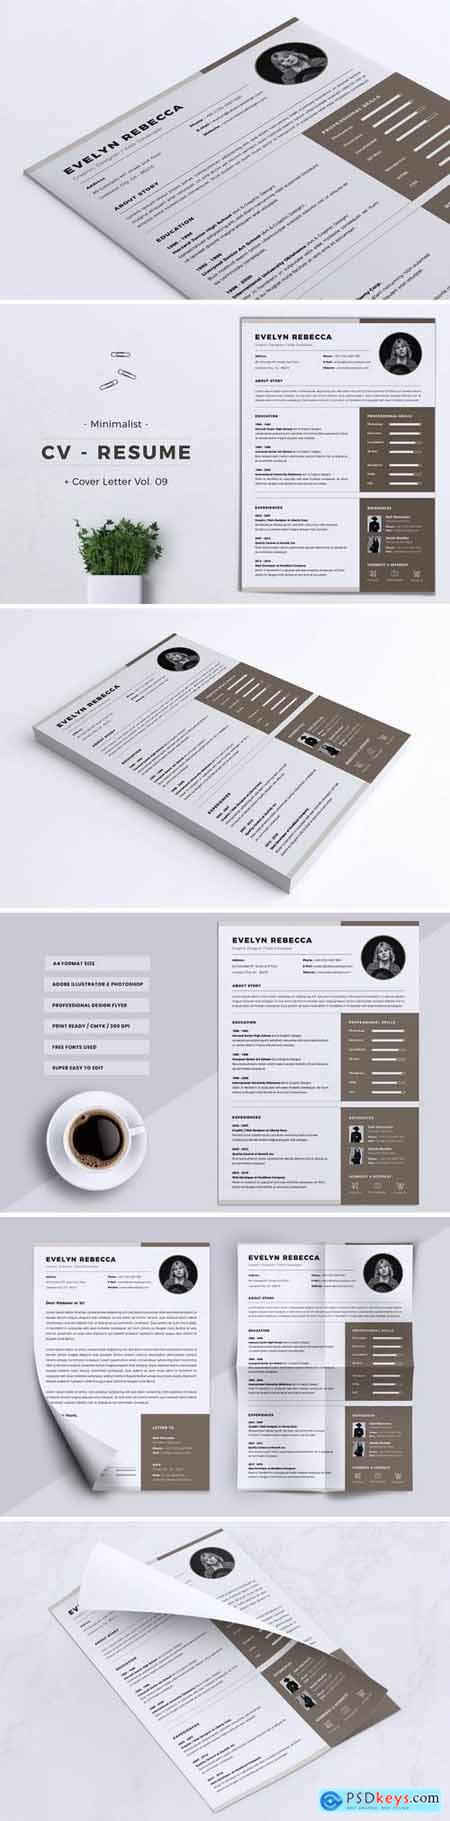 Minimalist CV Resume Vol. 09